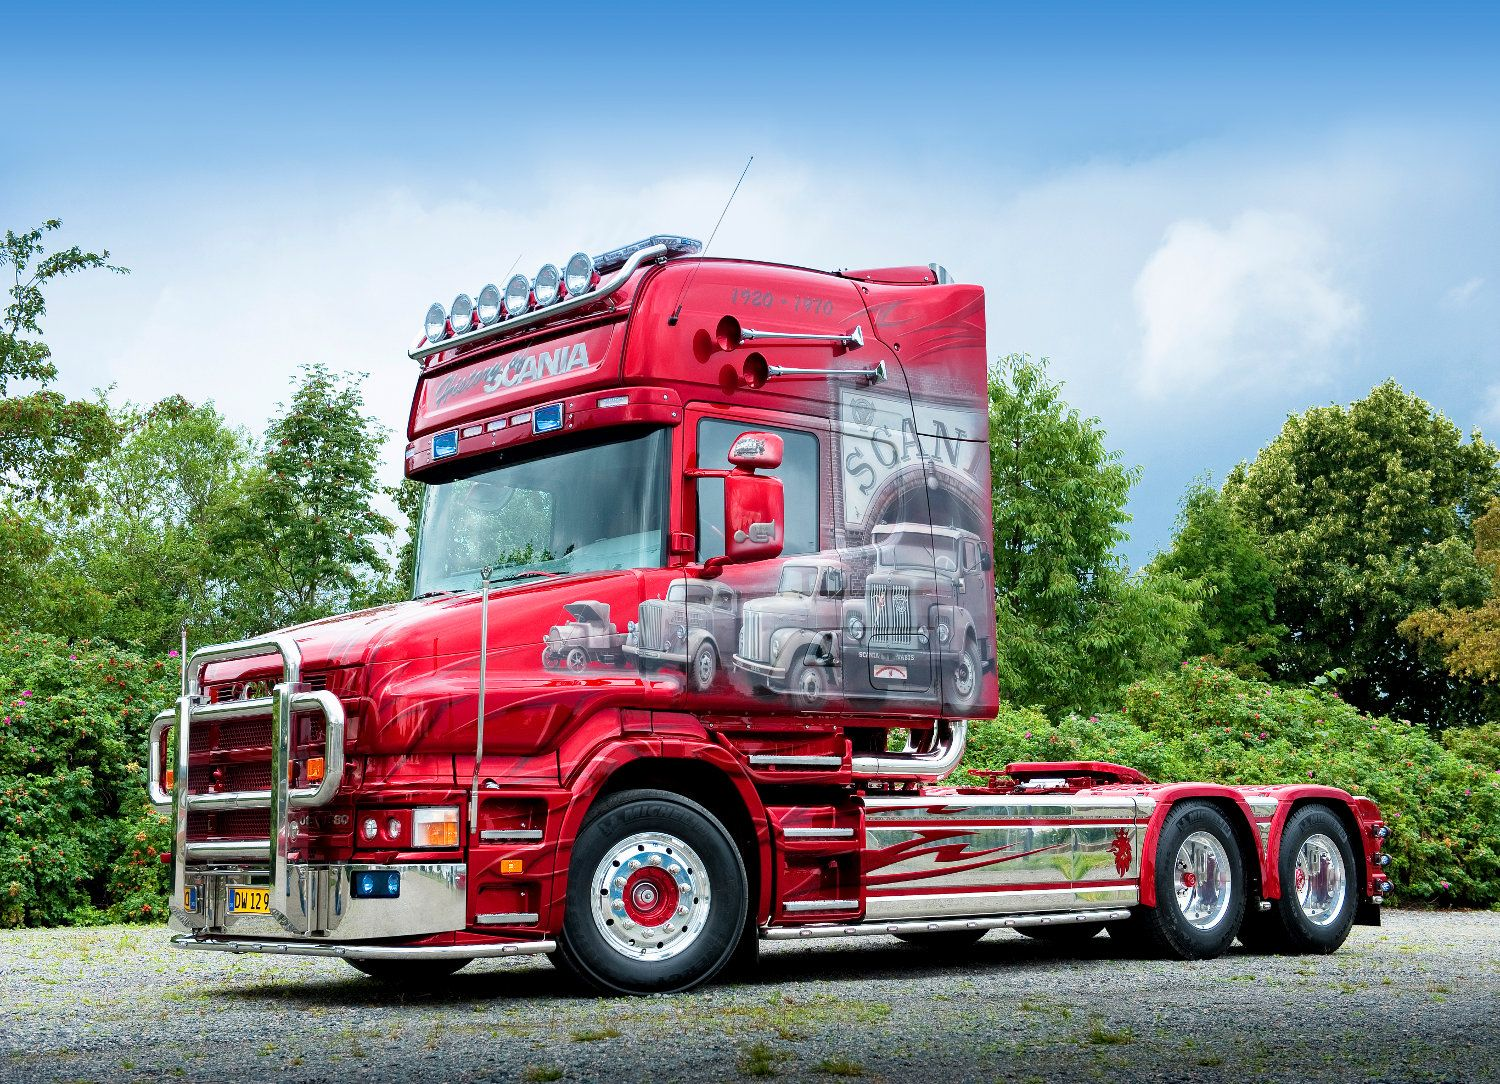 Supertruck scania t 164 580 the history of scania by brigitte and martin larsen